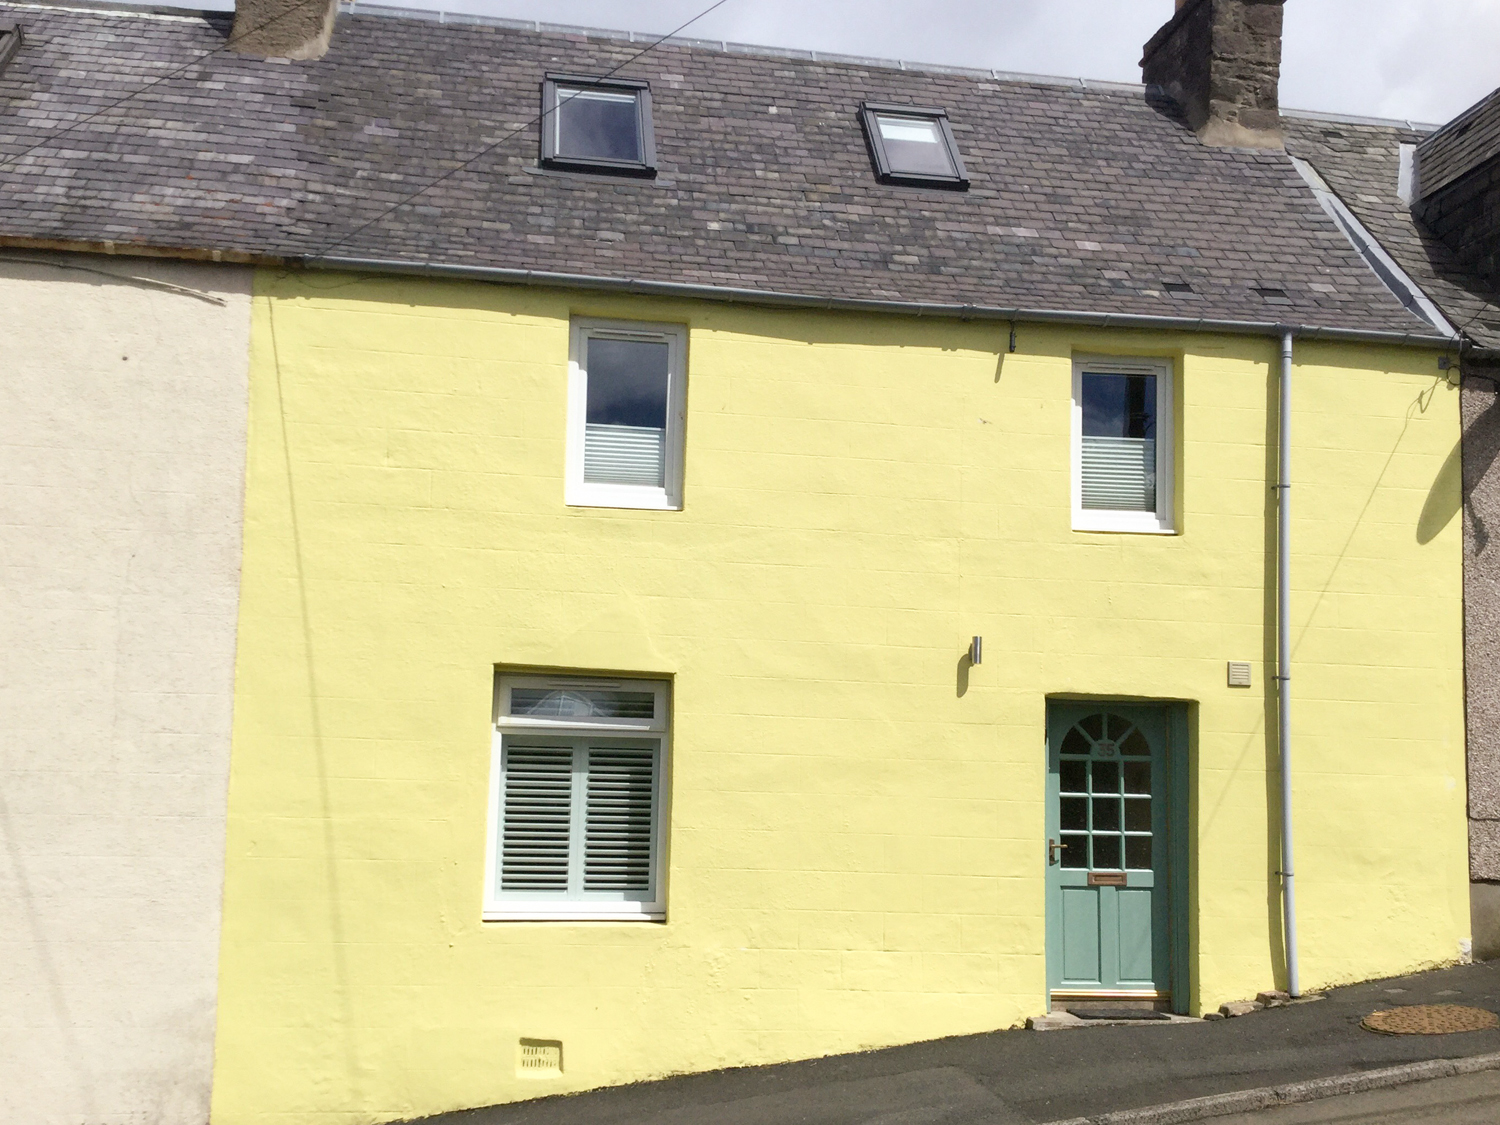 The Yellow House, Stow of Wedale